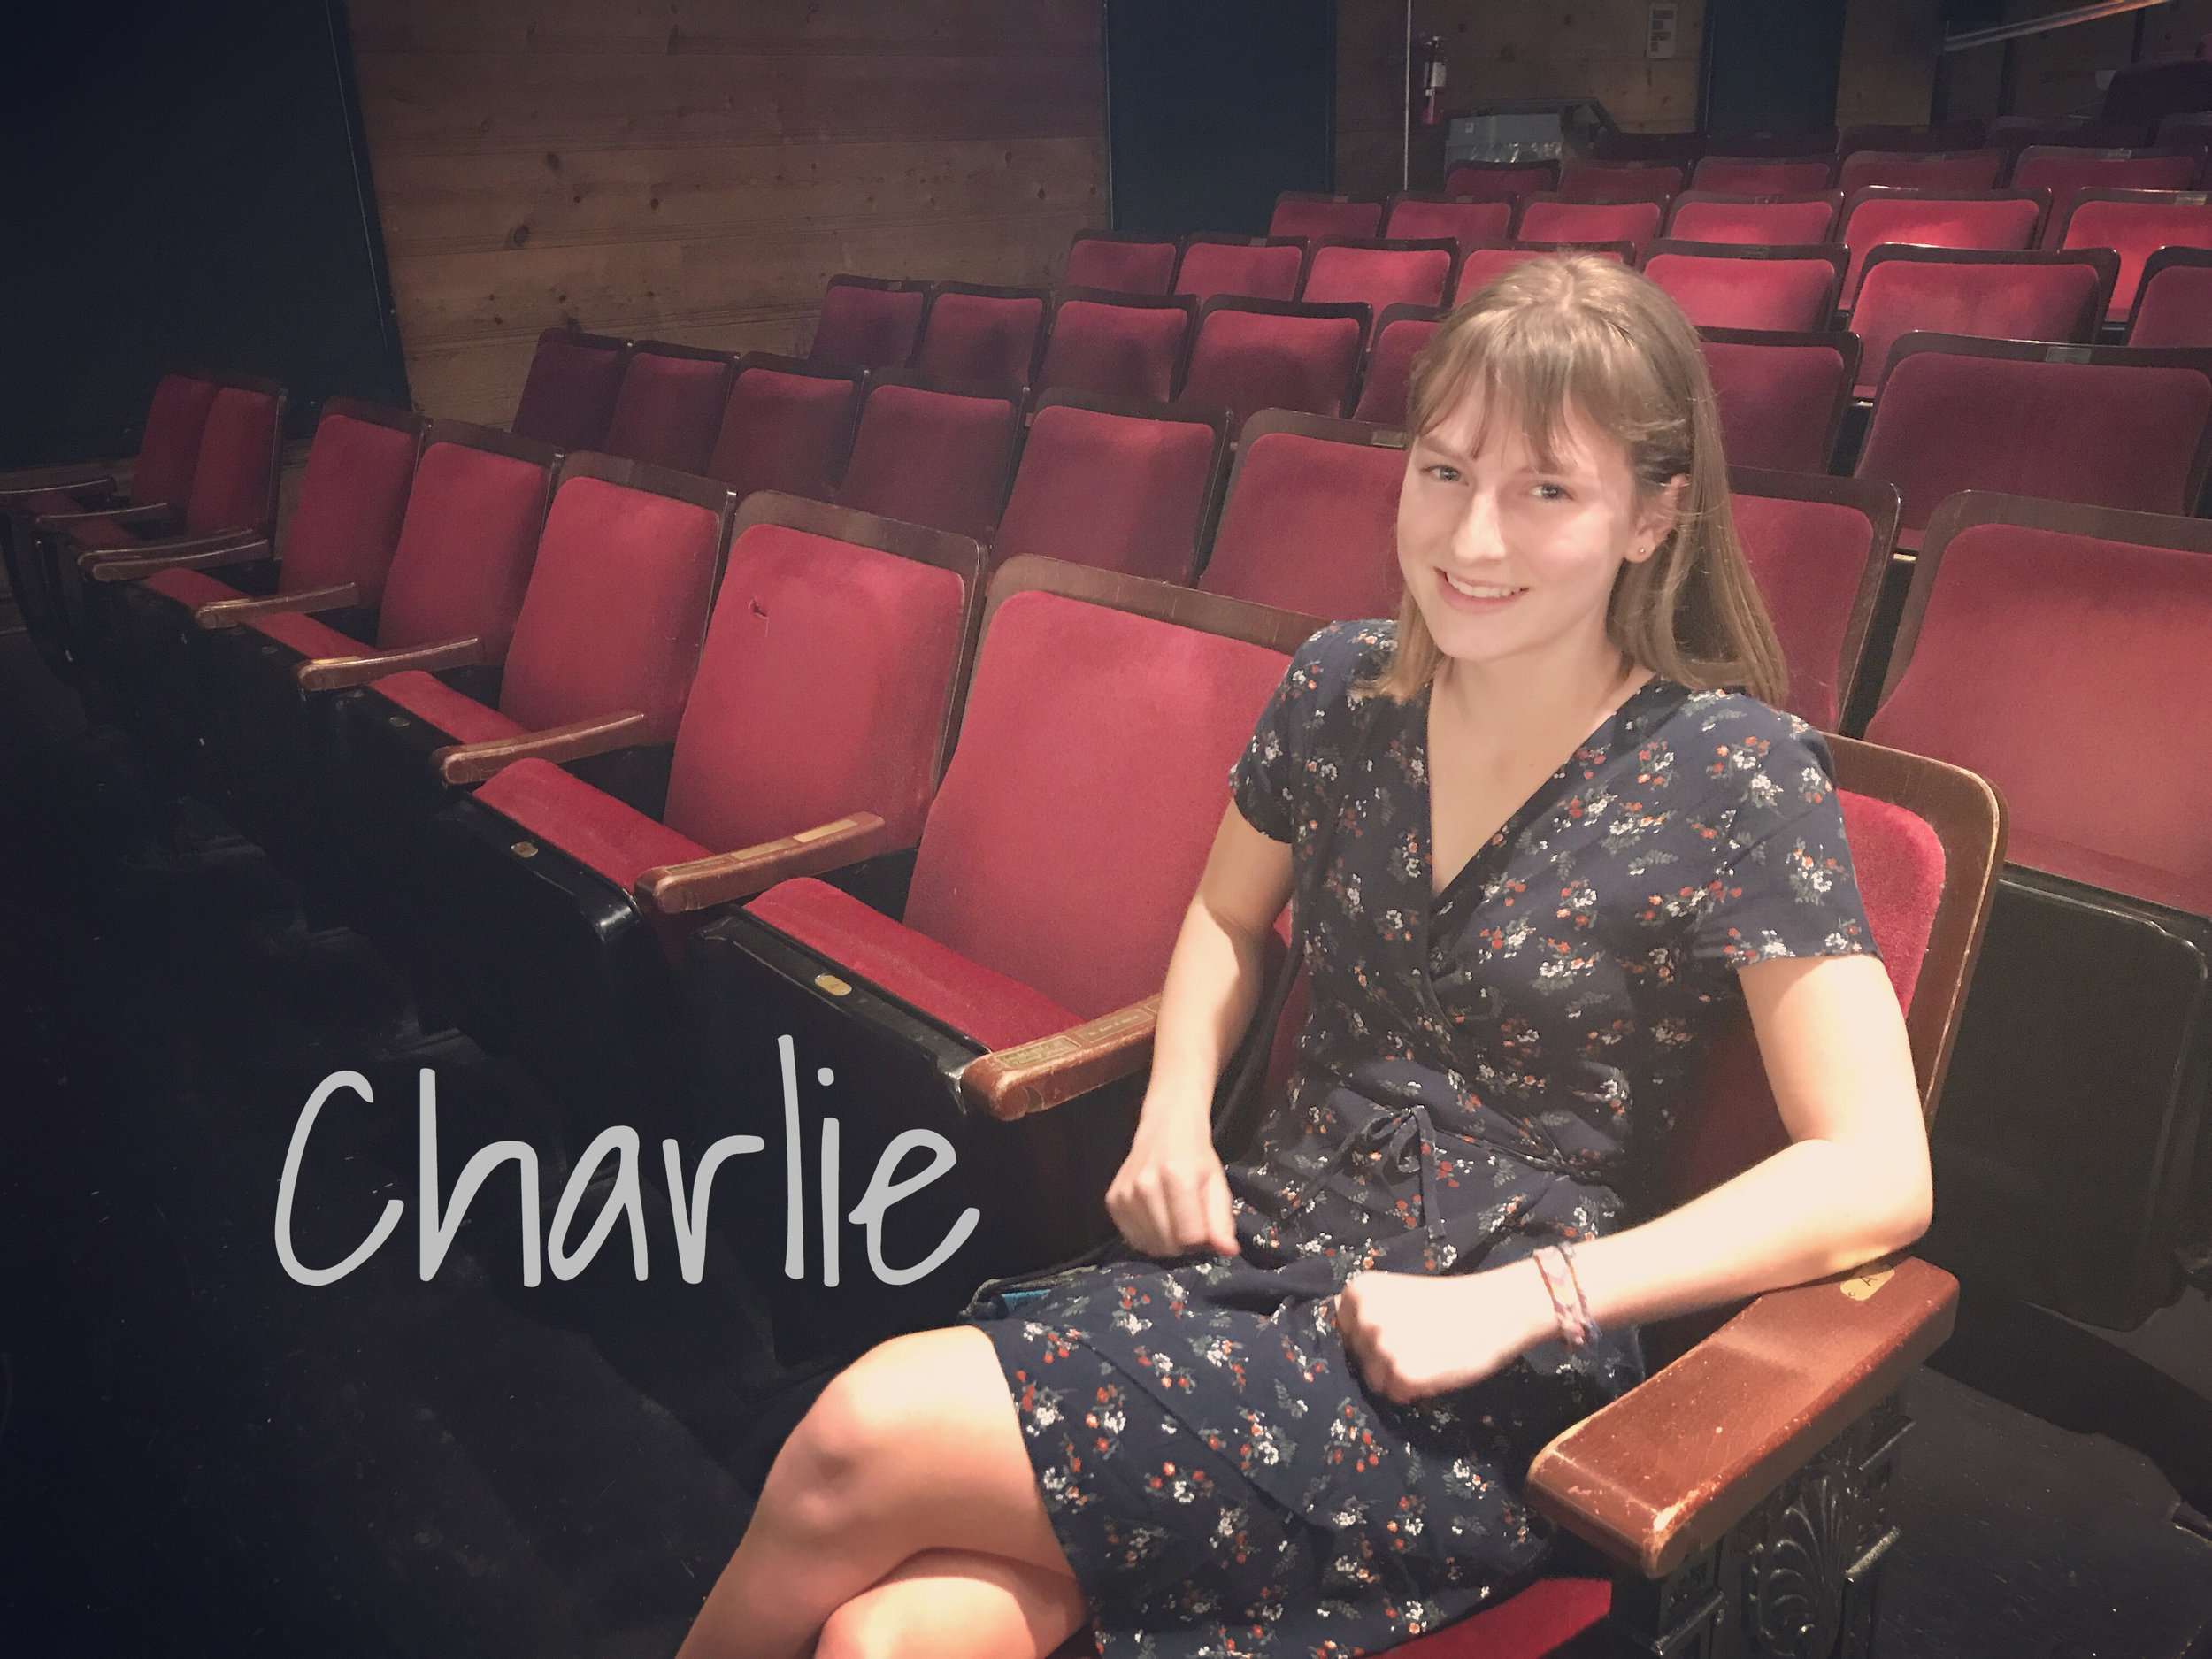 Charlie - READ WHAT CHARLIE HAS TO SAY ABOUT THE REVOLUTIONISTS!READ WHAT CHARLIE HAS TO SAY ABOUT GREAT EXPECTATIONS!READ WHAT CHARLIE HAS TO SAY ABOUT BROOKLYN BRIDGE!READ WHAT CHARLIE HAS TO SAY ABOUT WOMEN ON THE VERGE!